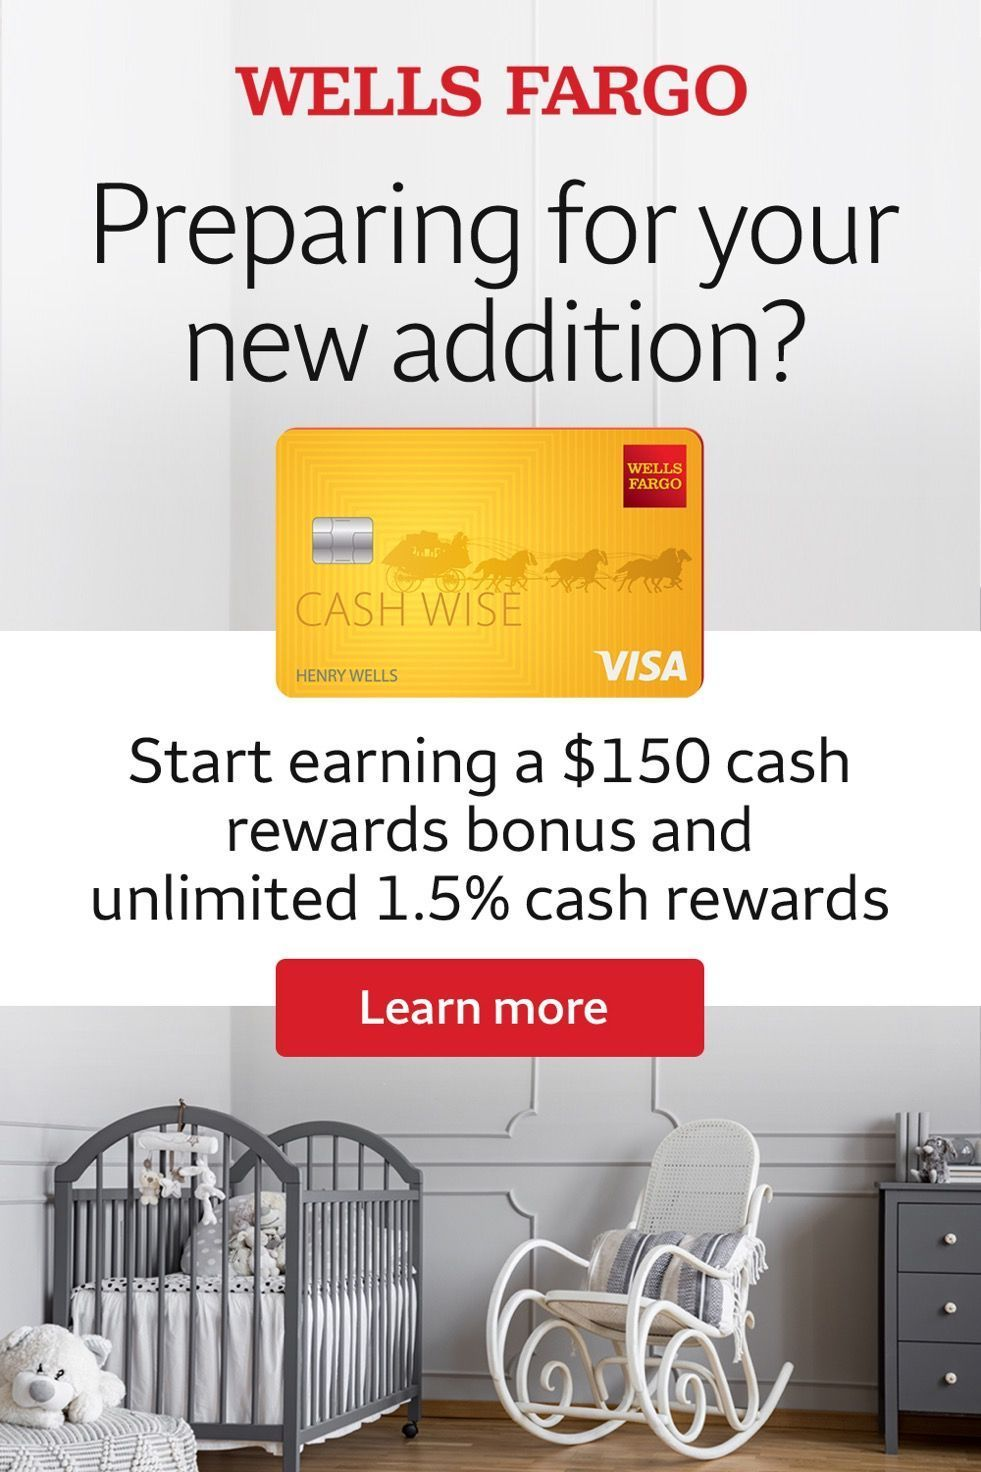 Apply for and use your Wells Fargo Cash Wise Visa Card when getting ready for